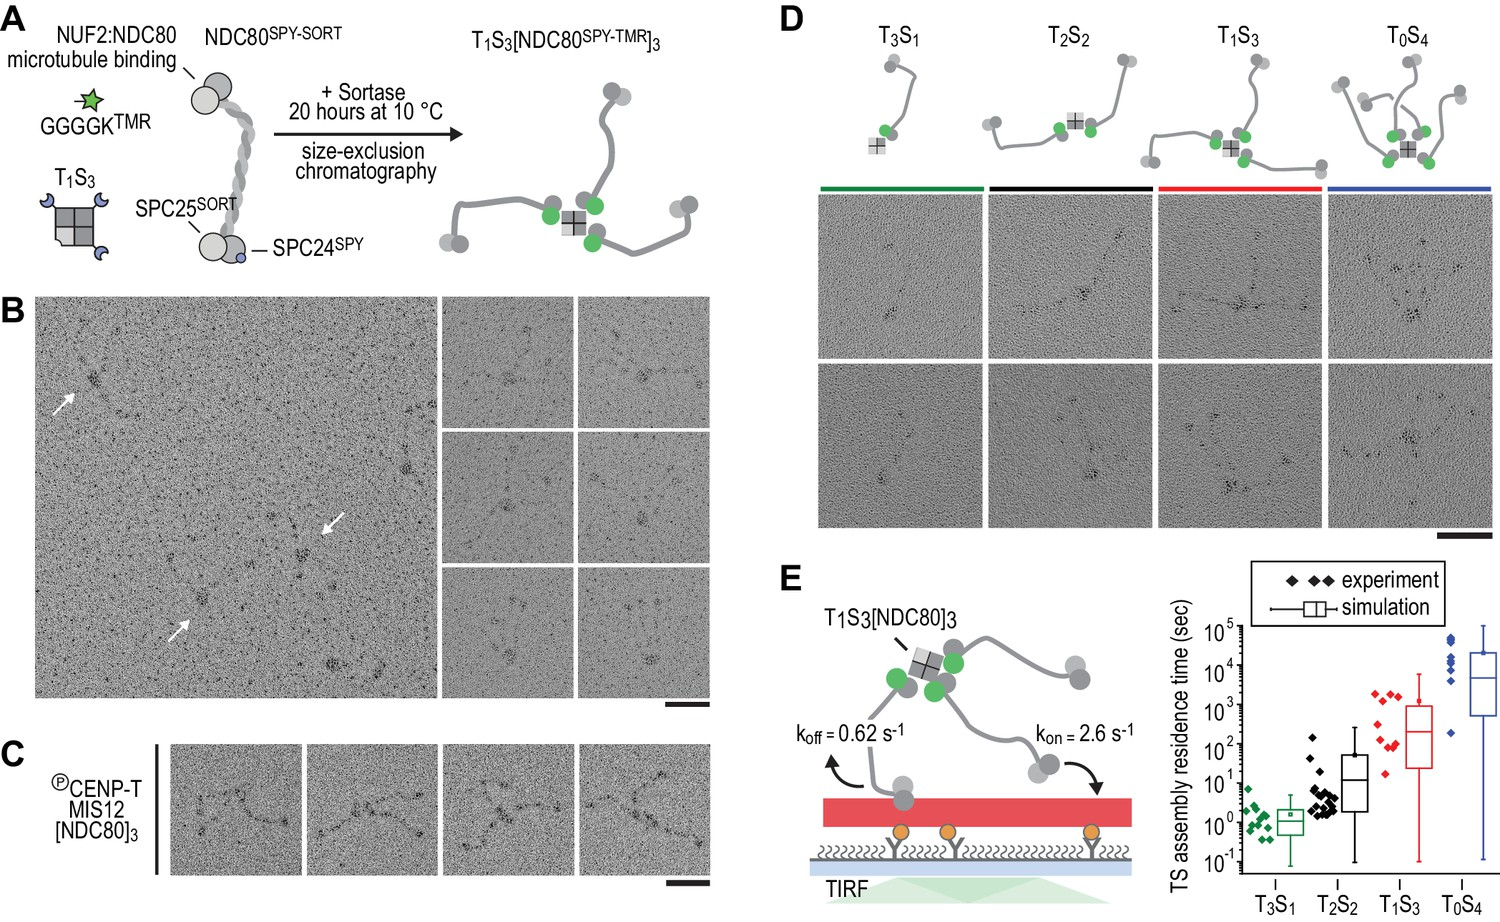 Multivalency Of Ndc80 In The Outer Kinetochore Is Essential To Track Free Body Diagram Showing Applied Force Only Partially Incremental Addition Results Hyperstable Microtubule Binding